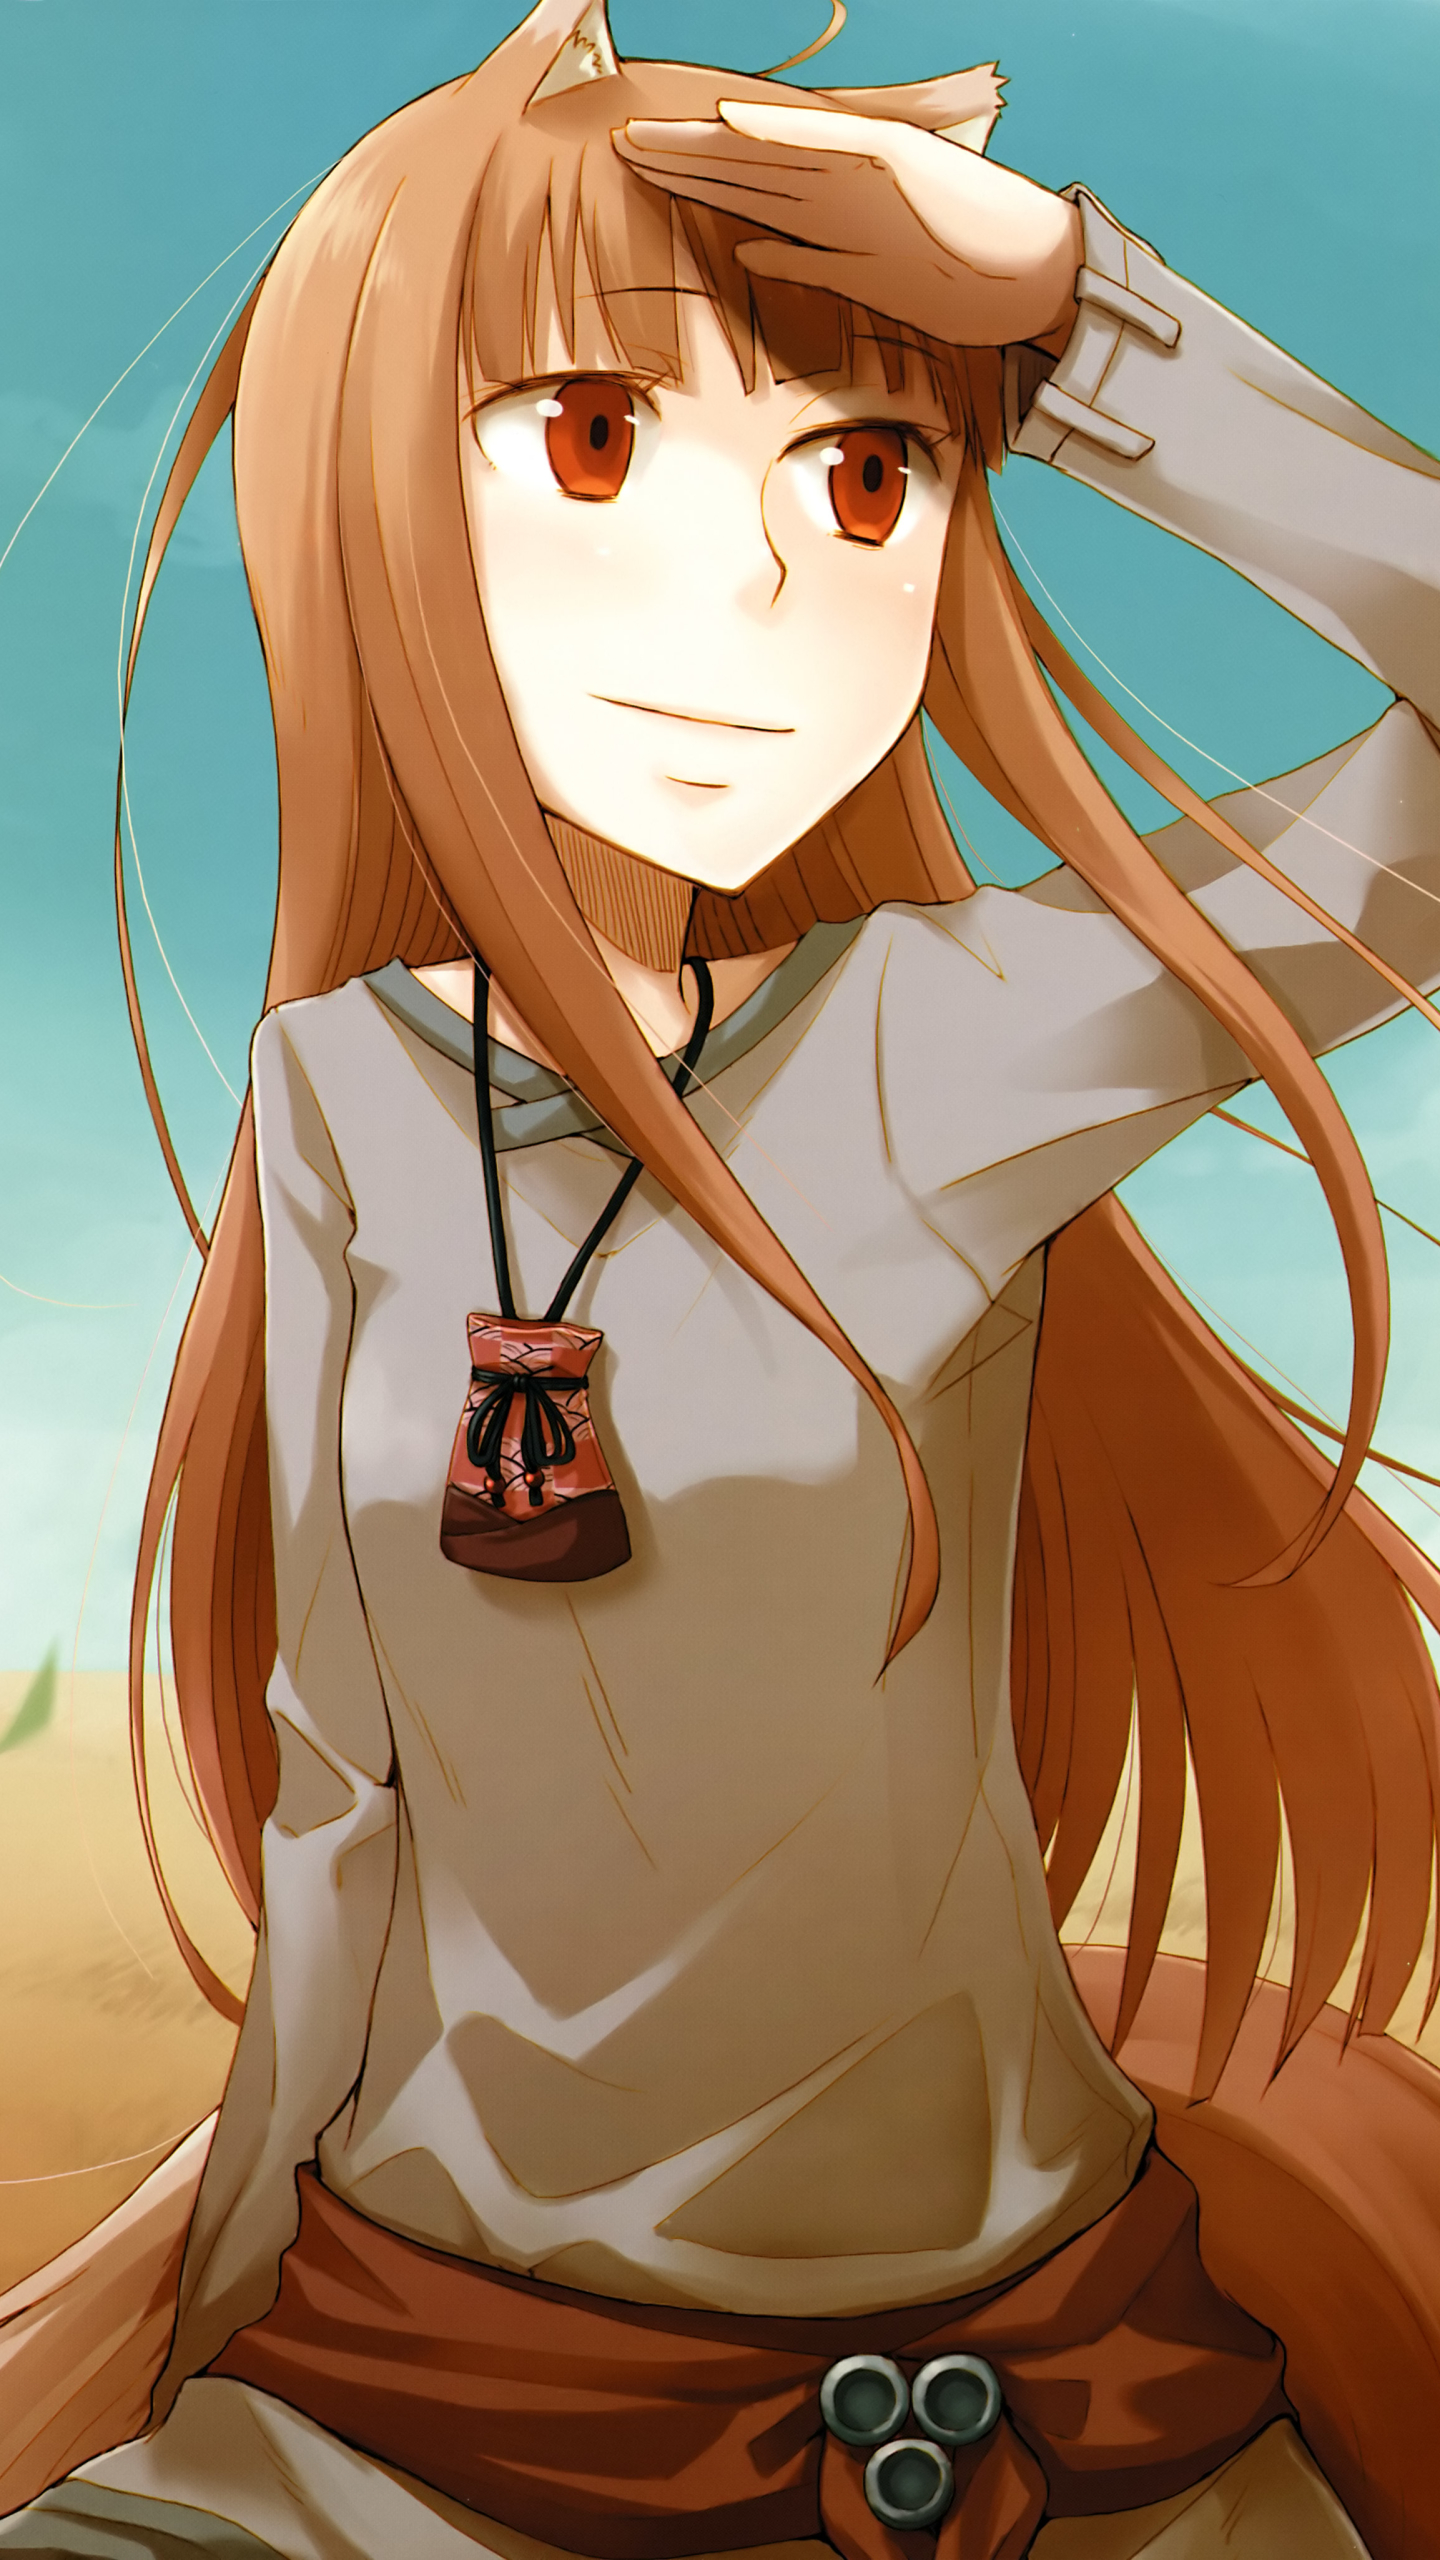 Anime Spice And Wolf 1440x2560 Mobile Wallpaper